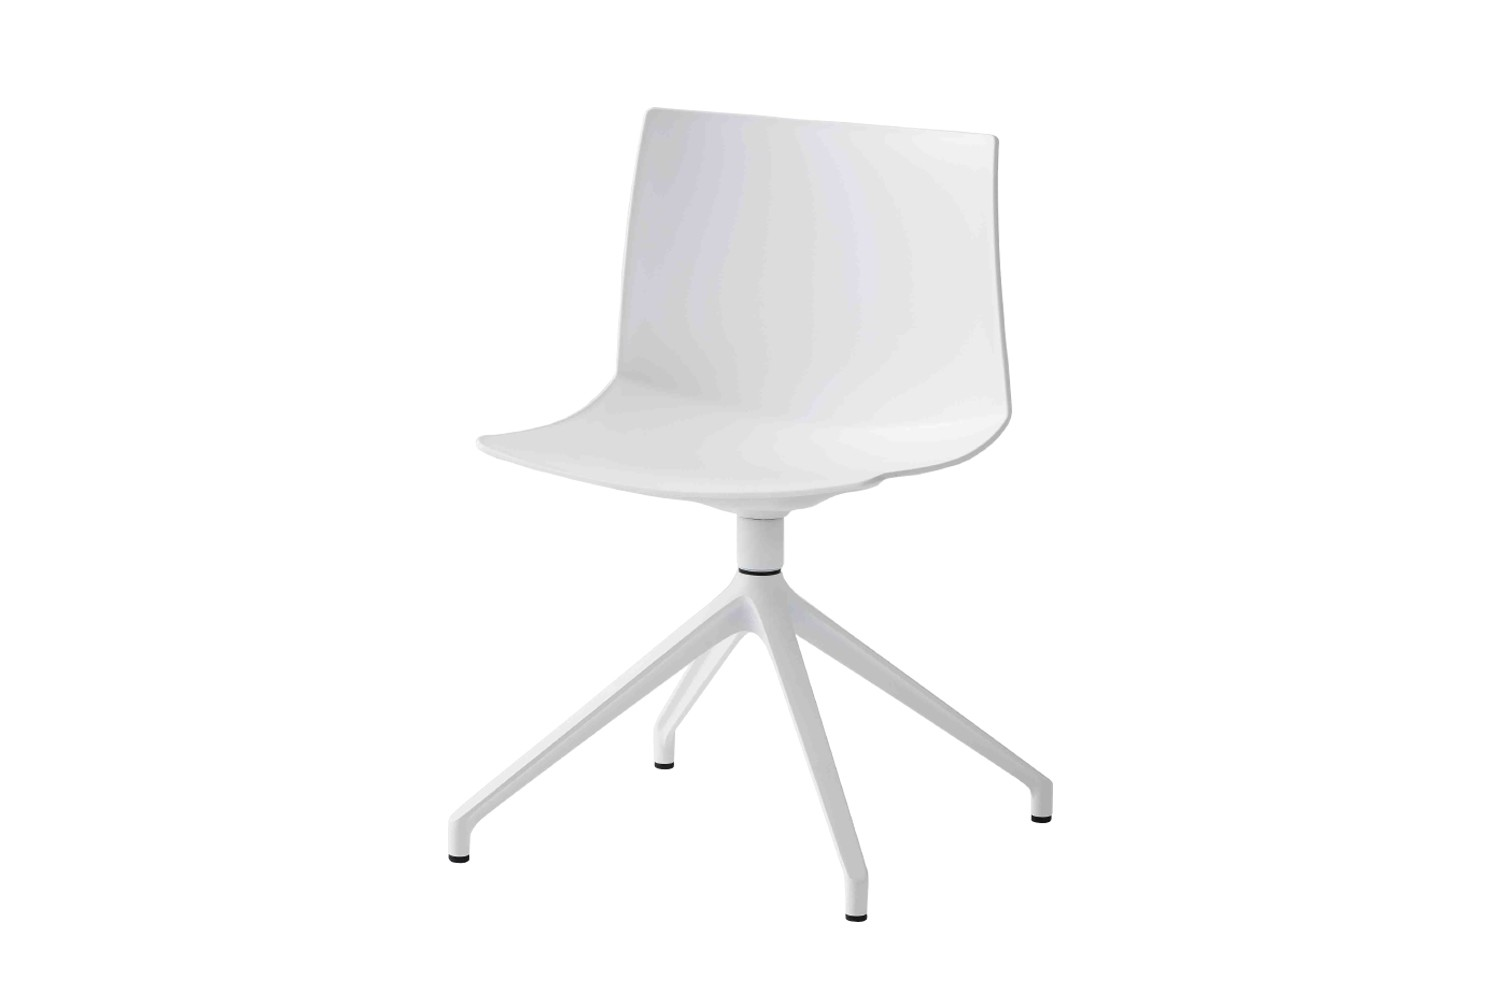 Kanvas 2 U Swivel Chair Set of 4 00 White, White Aluminium